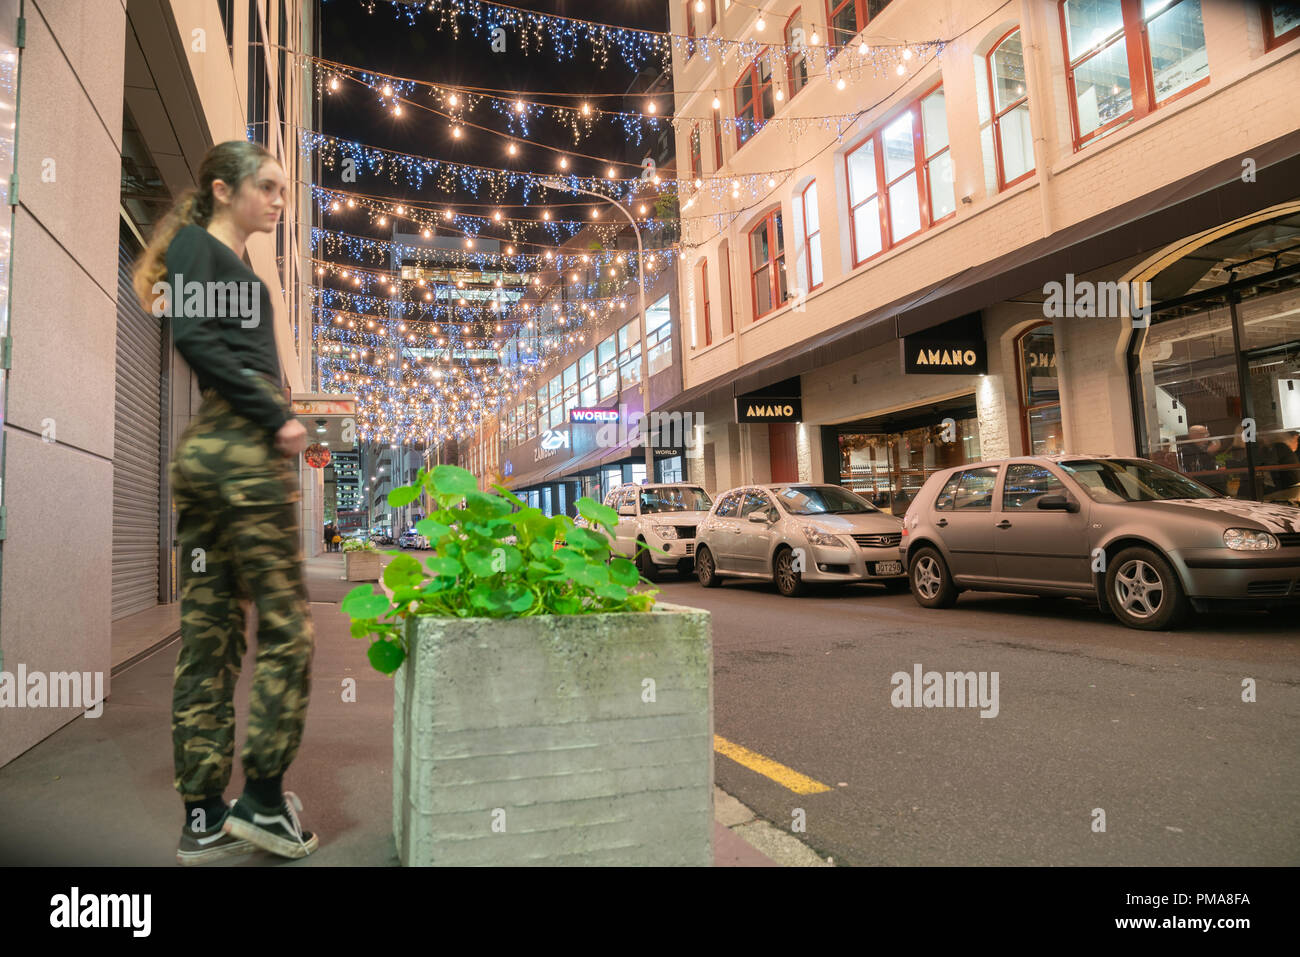 AUCKLAND, NEW ZEALAND - SEPTEMBER 14 2018; Auckland's Britomart area, bright and decorative lights, street furniture with young trendy woman  at night - Stock Image